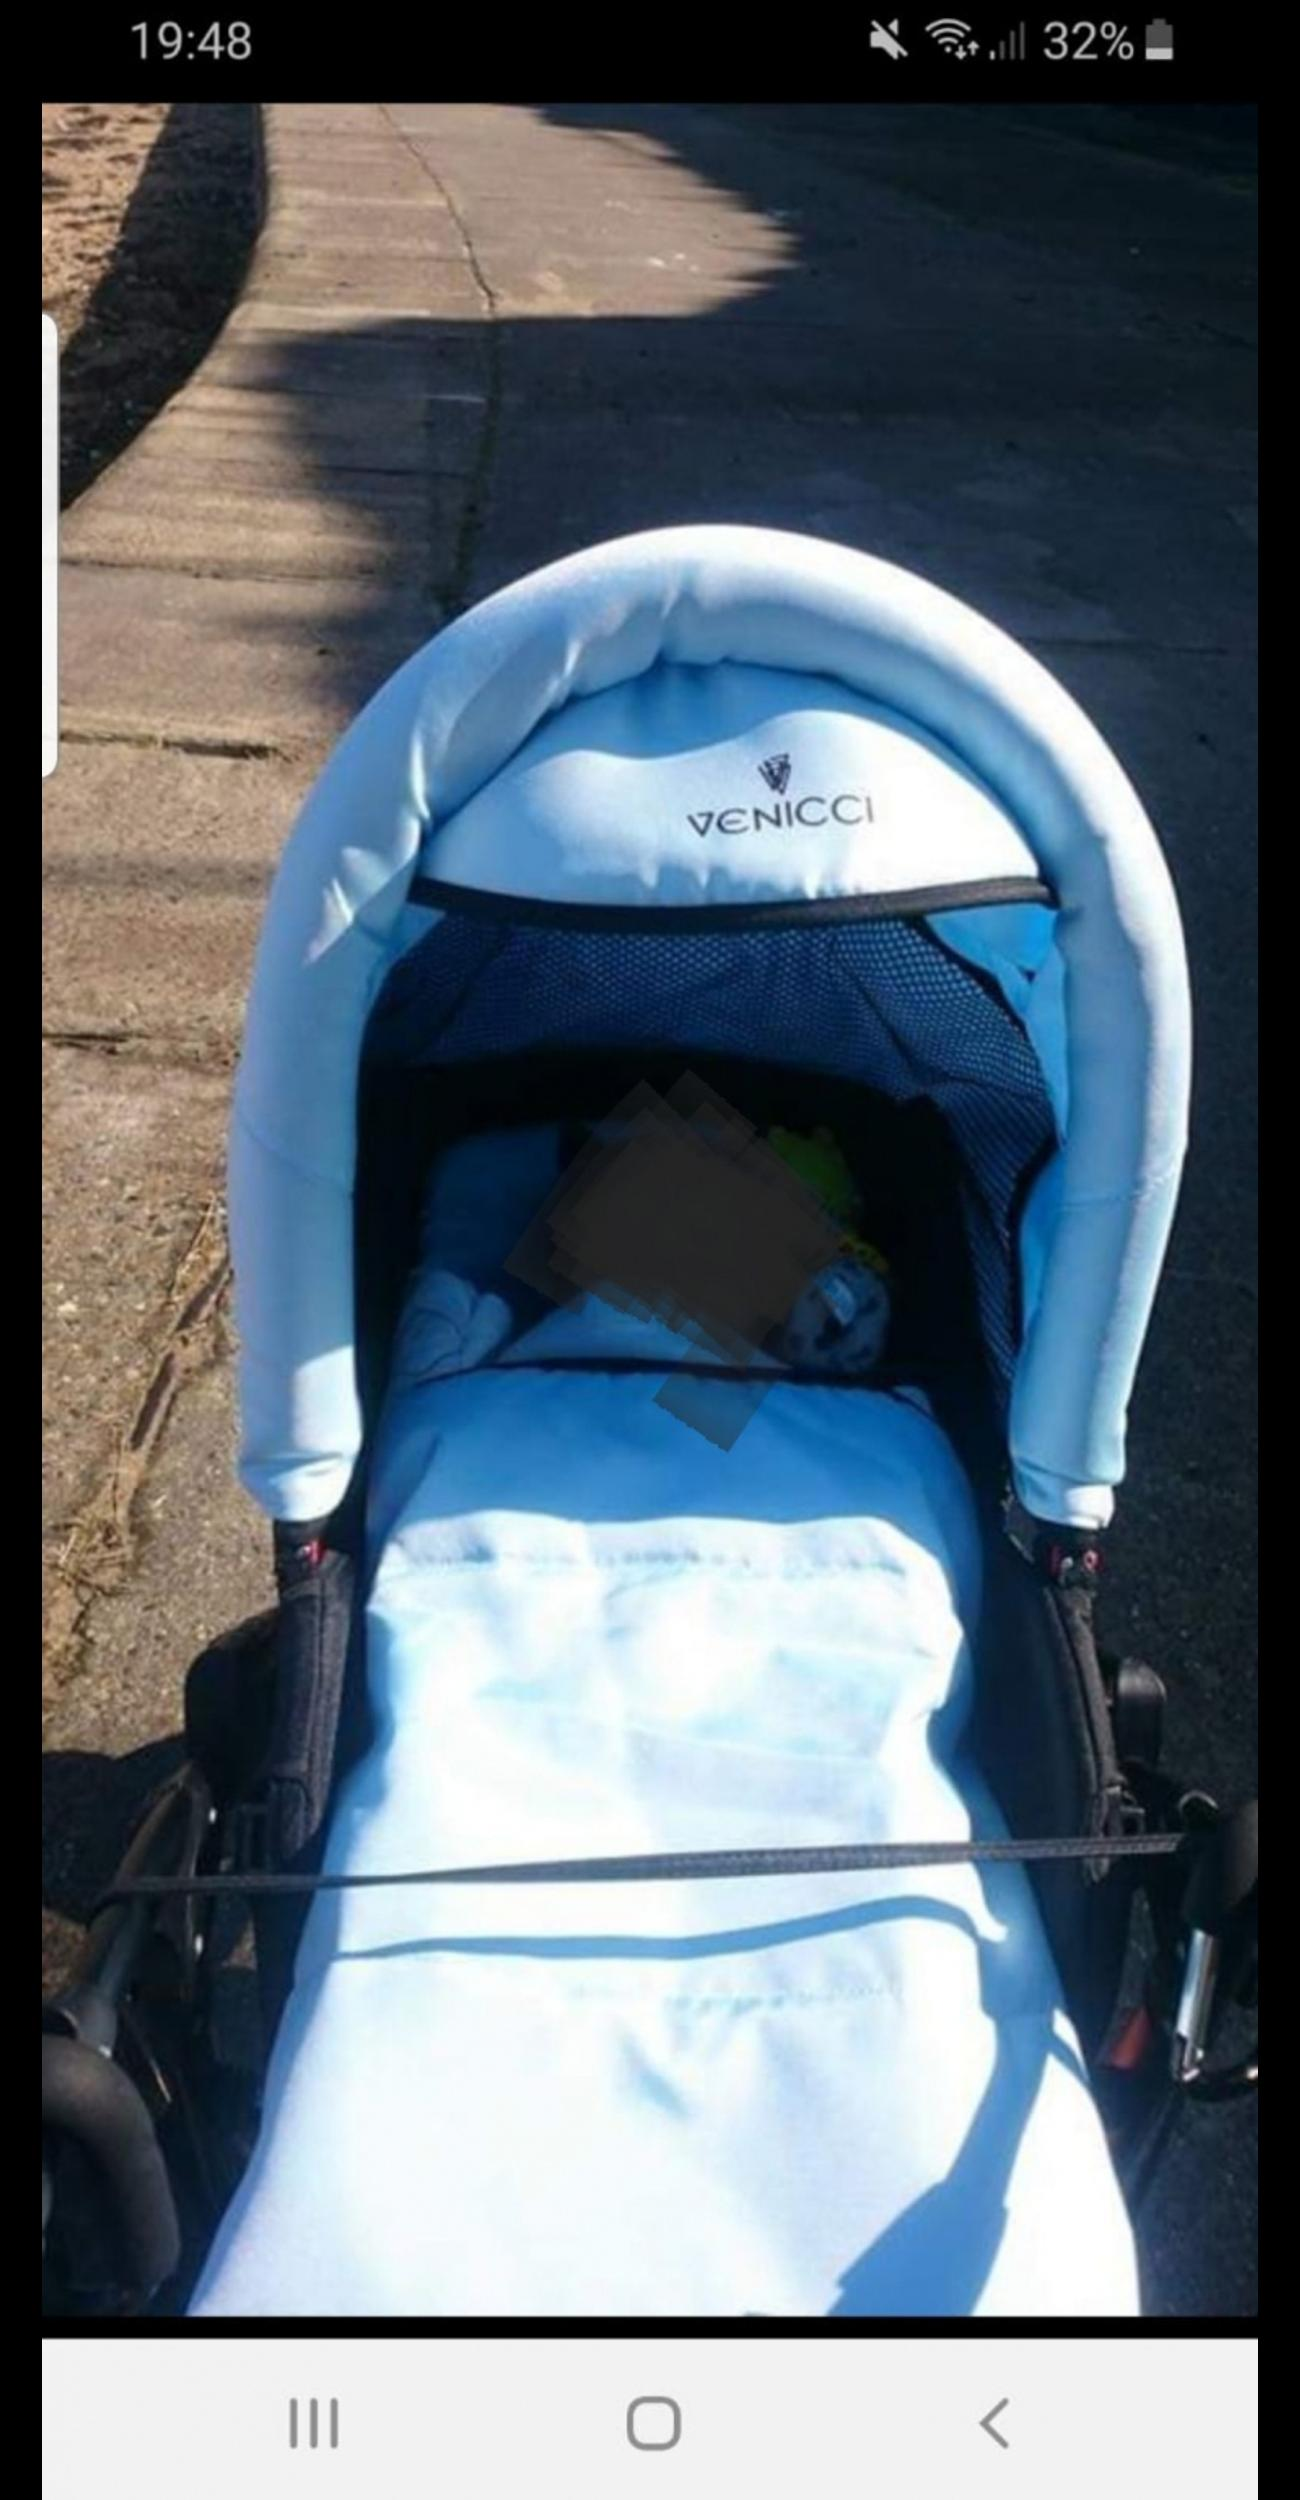 Newborn In Pram Seat Venicci Pram In Ct9 Thanet For 180 00 For Sale Shpock